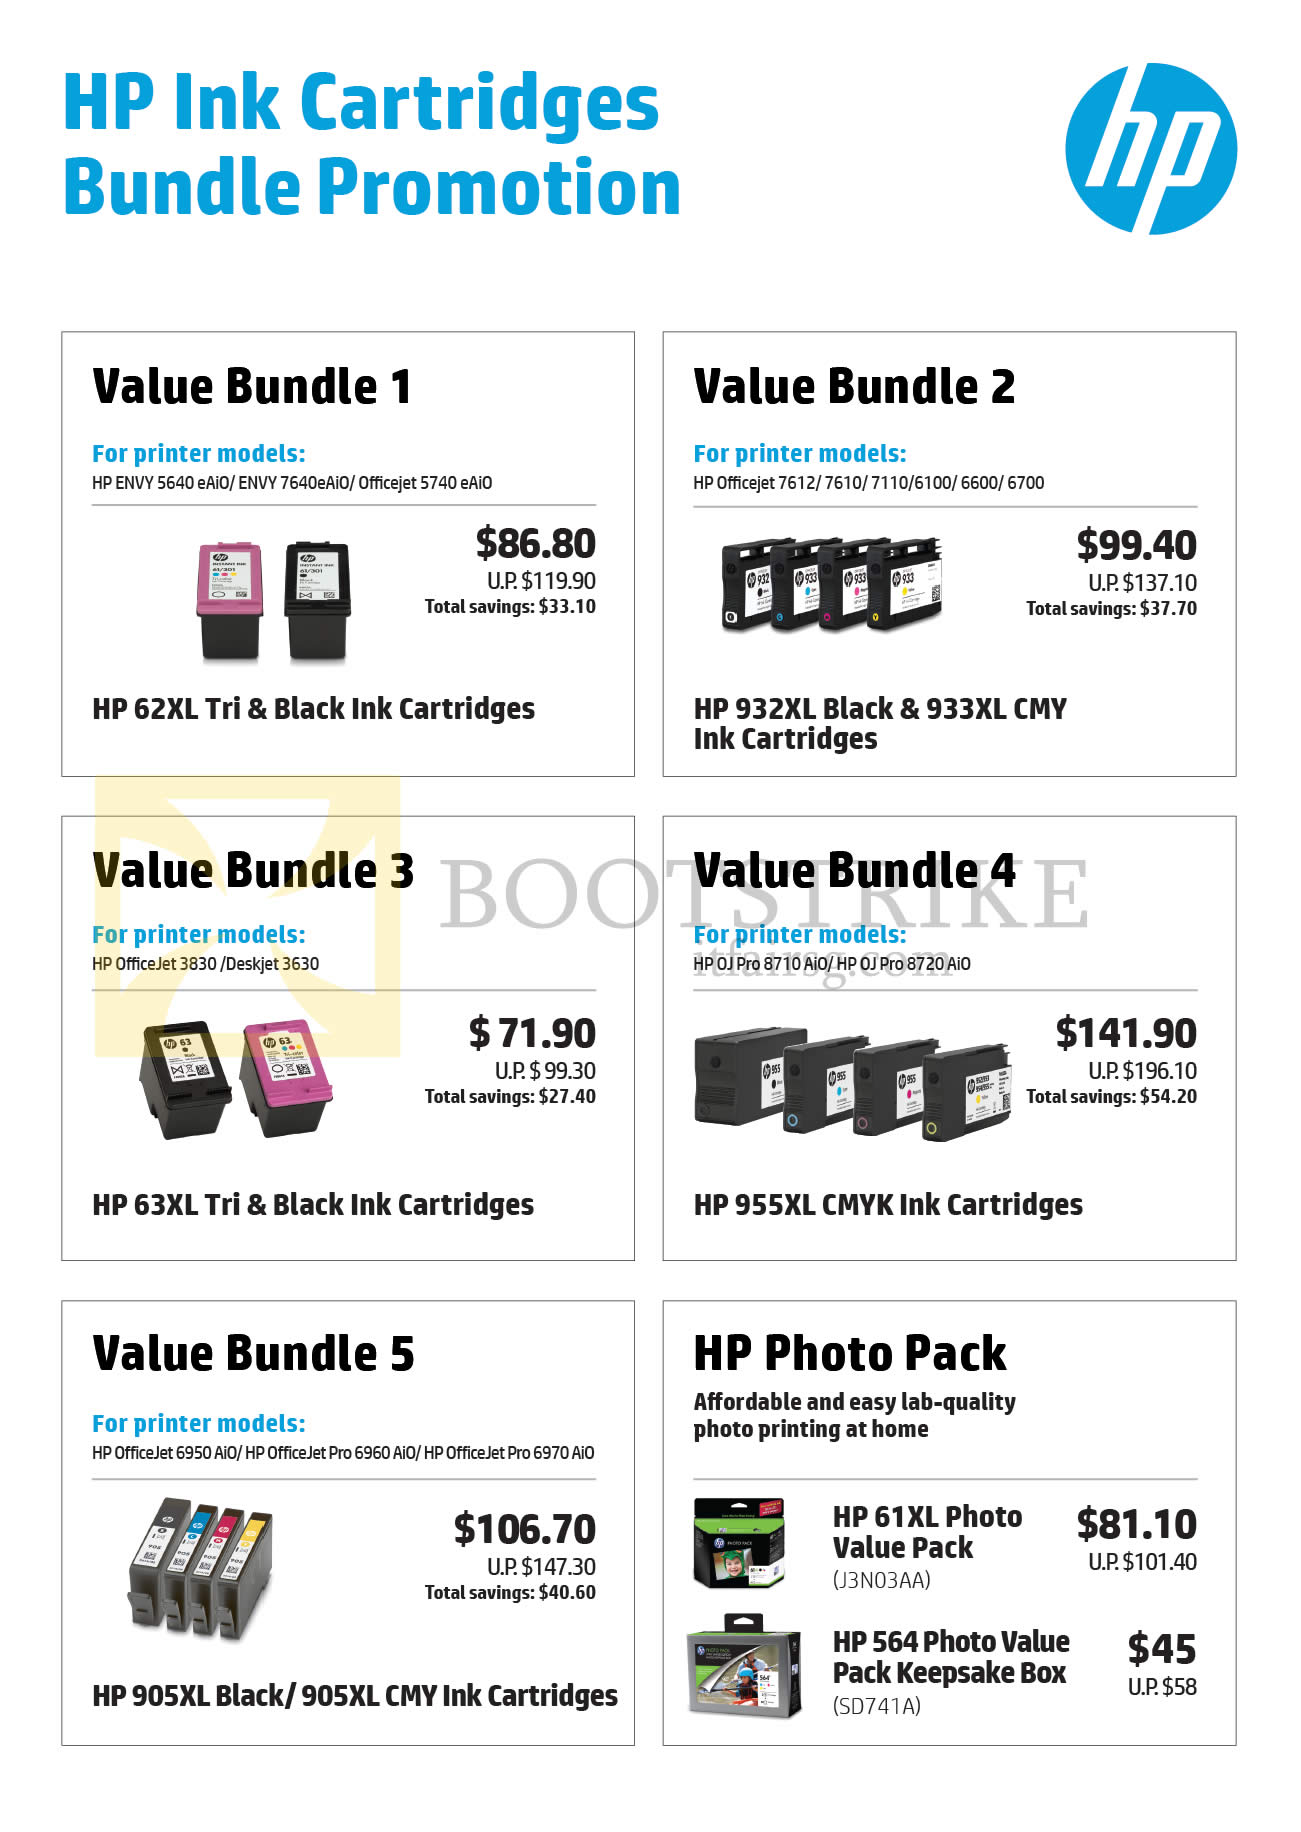 COMEX 2016 price list image brochure of HP Ink Cartridges Bundle Promotions 1, 2, 3, 4, 5, HP Photo Pack